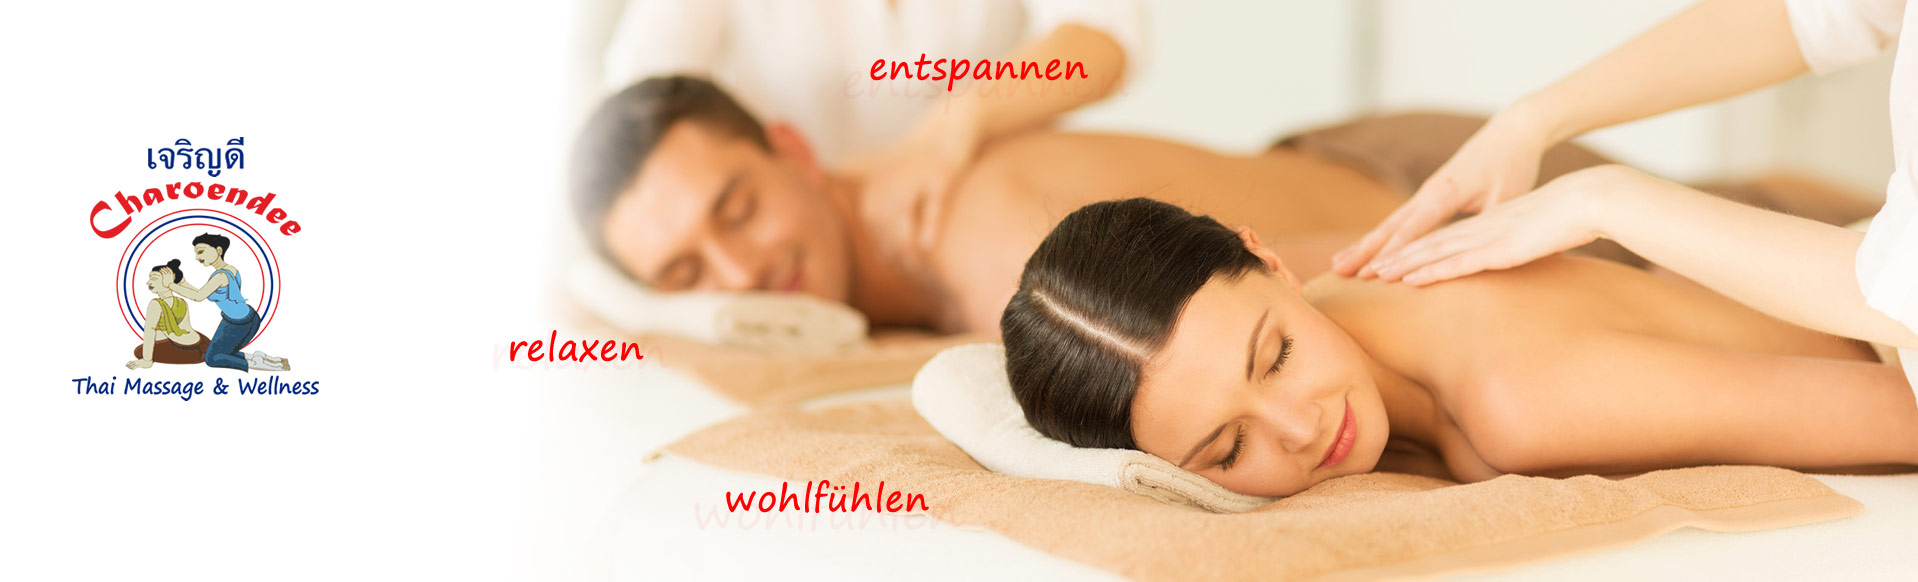 thai-massage-buehl-banner